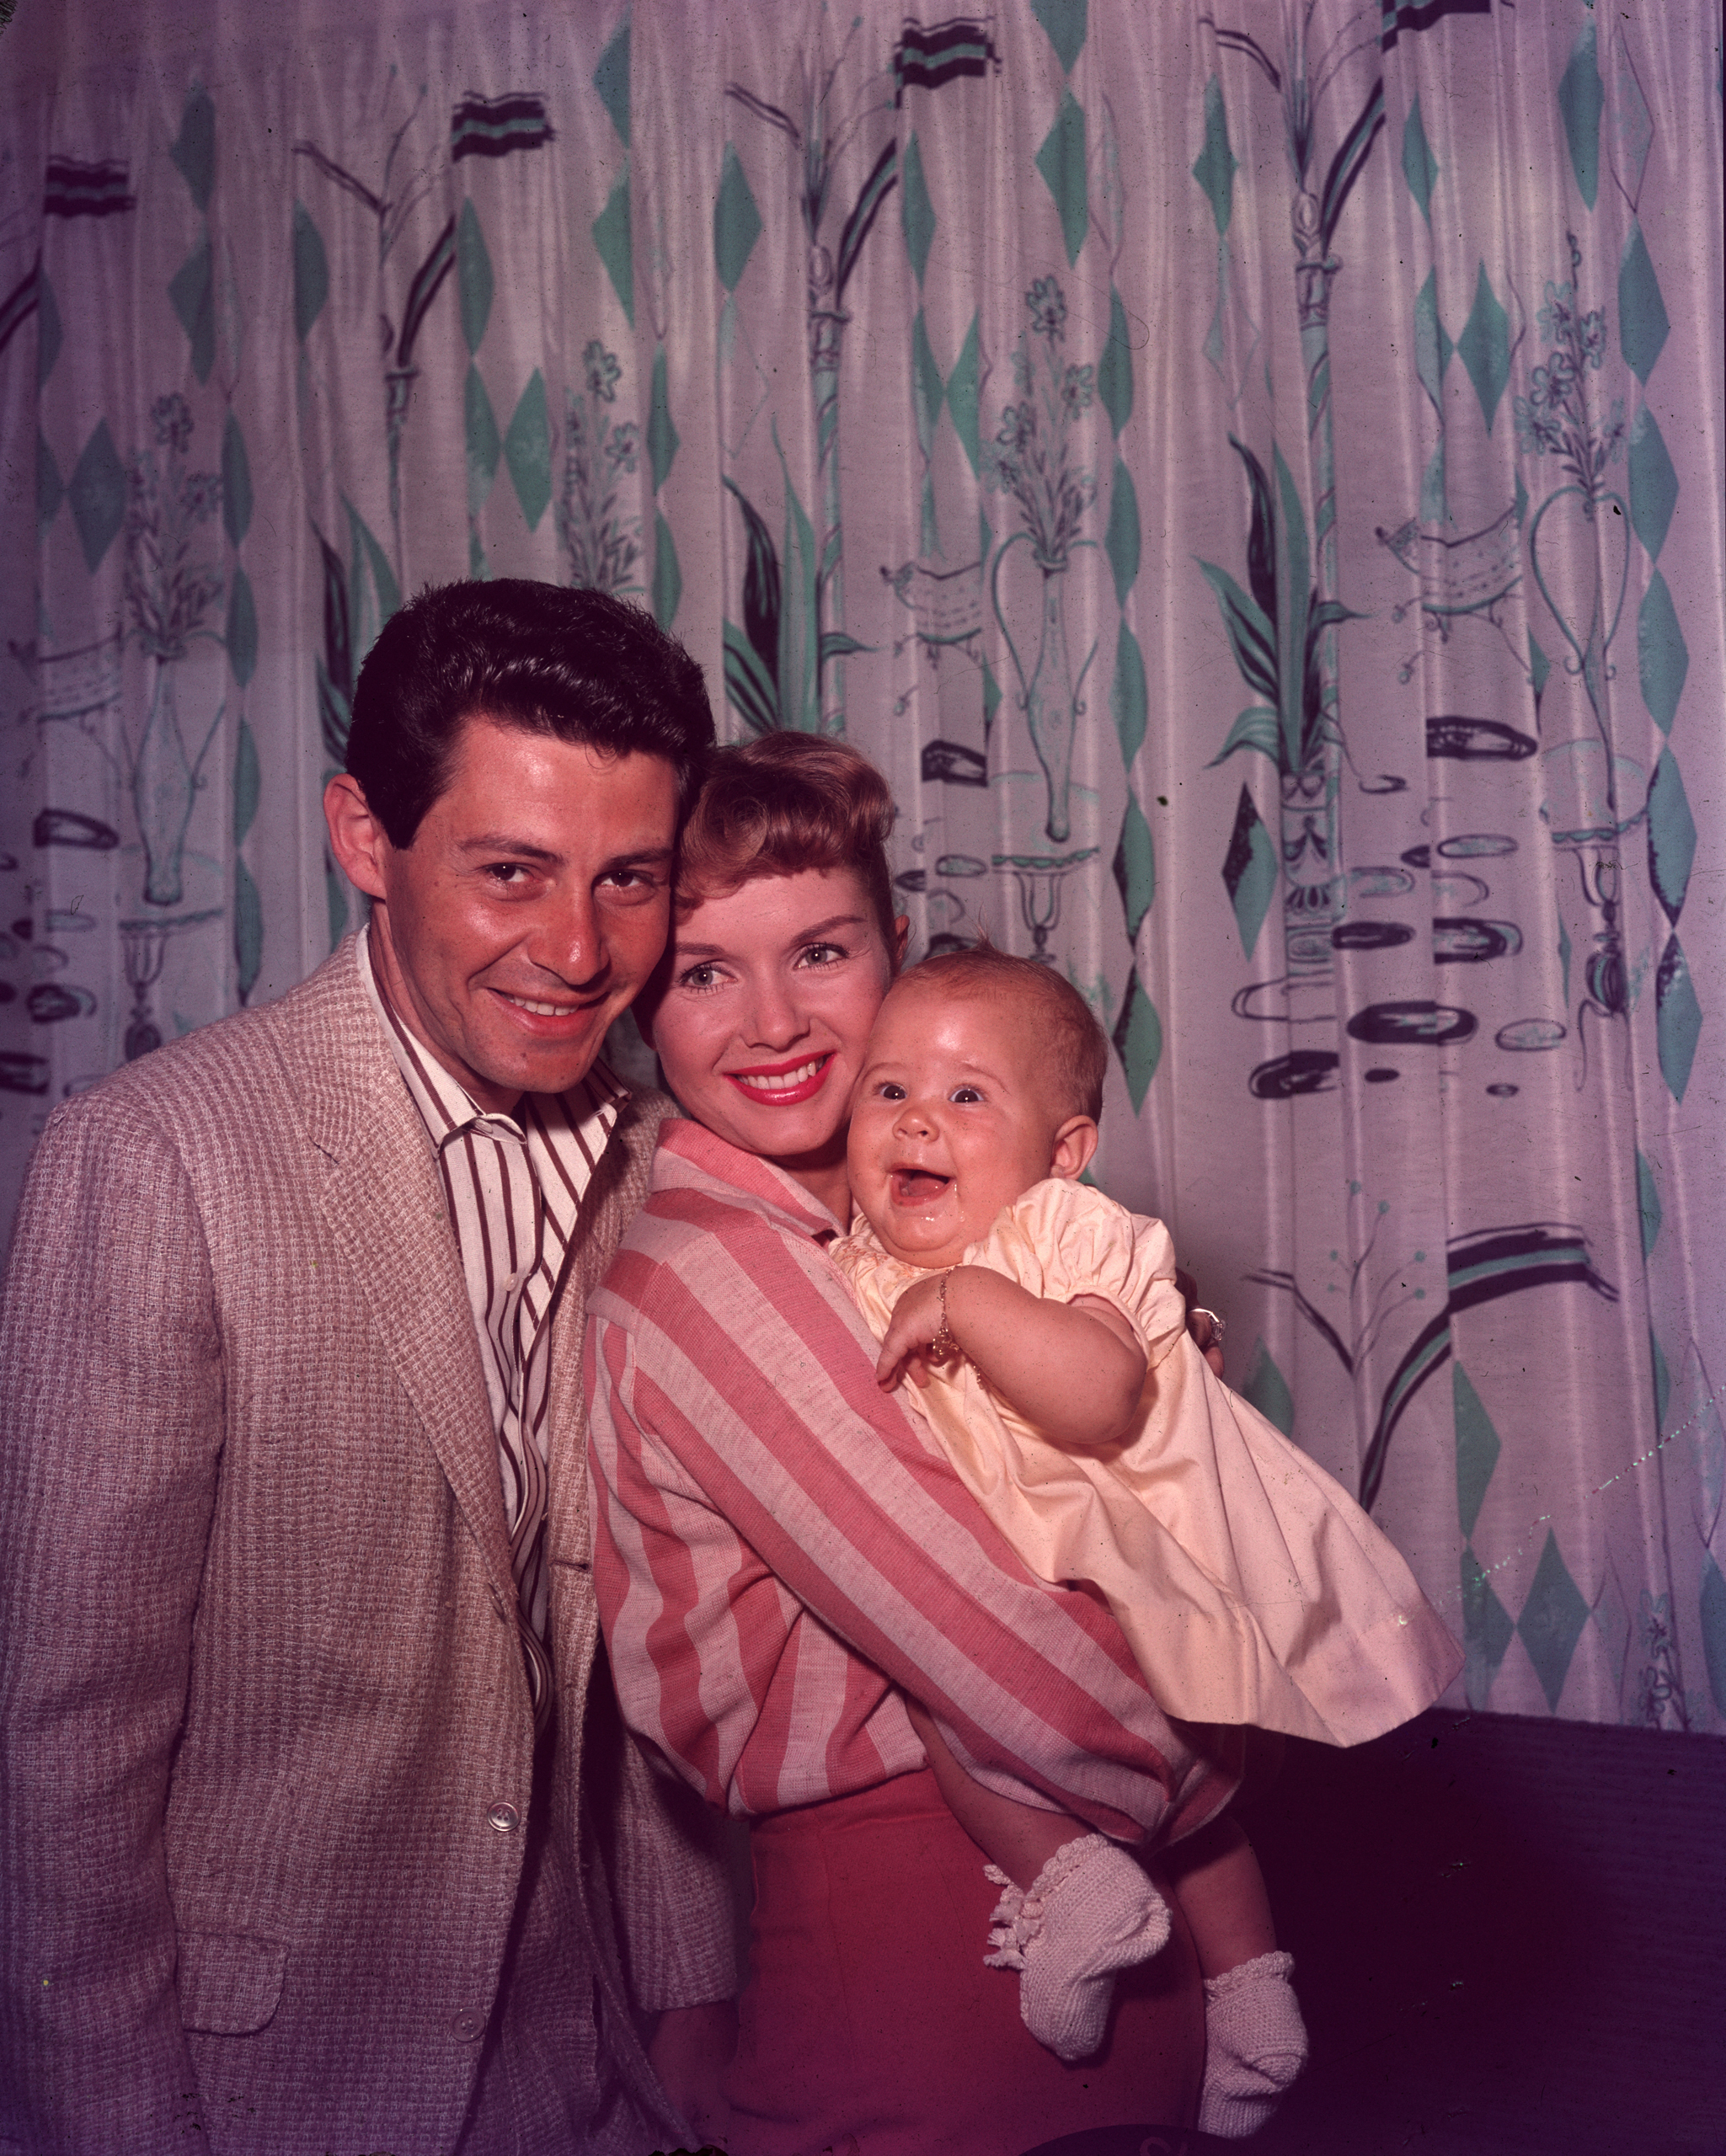 Family portrait of American singer Eddie Fisher and Debbie Reynolds with their daughter Carrie Fisher.